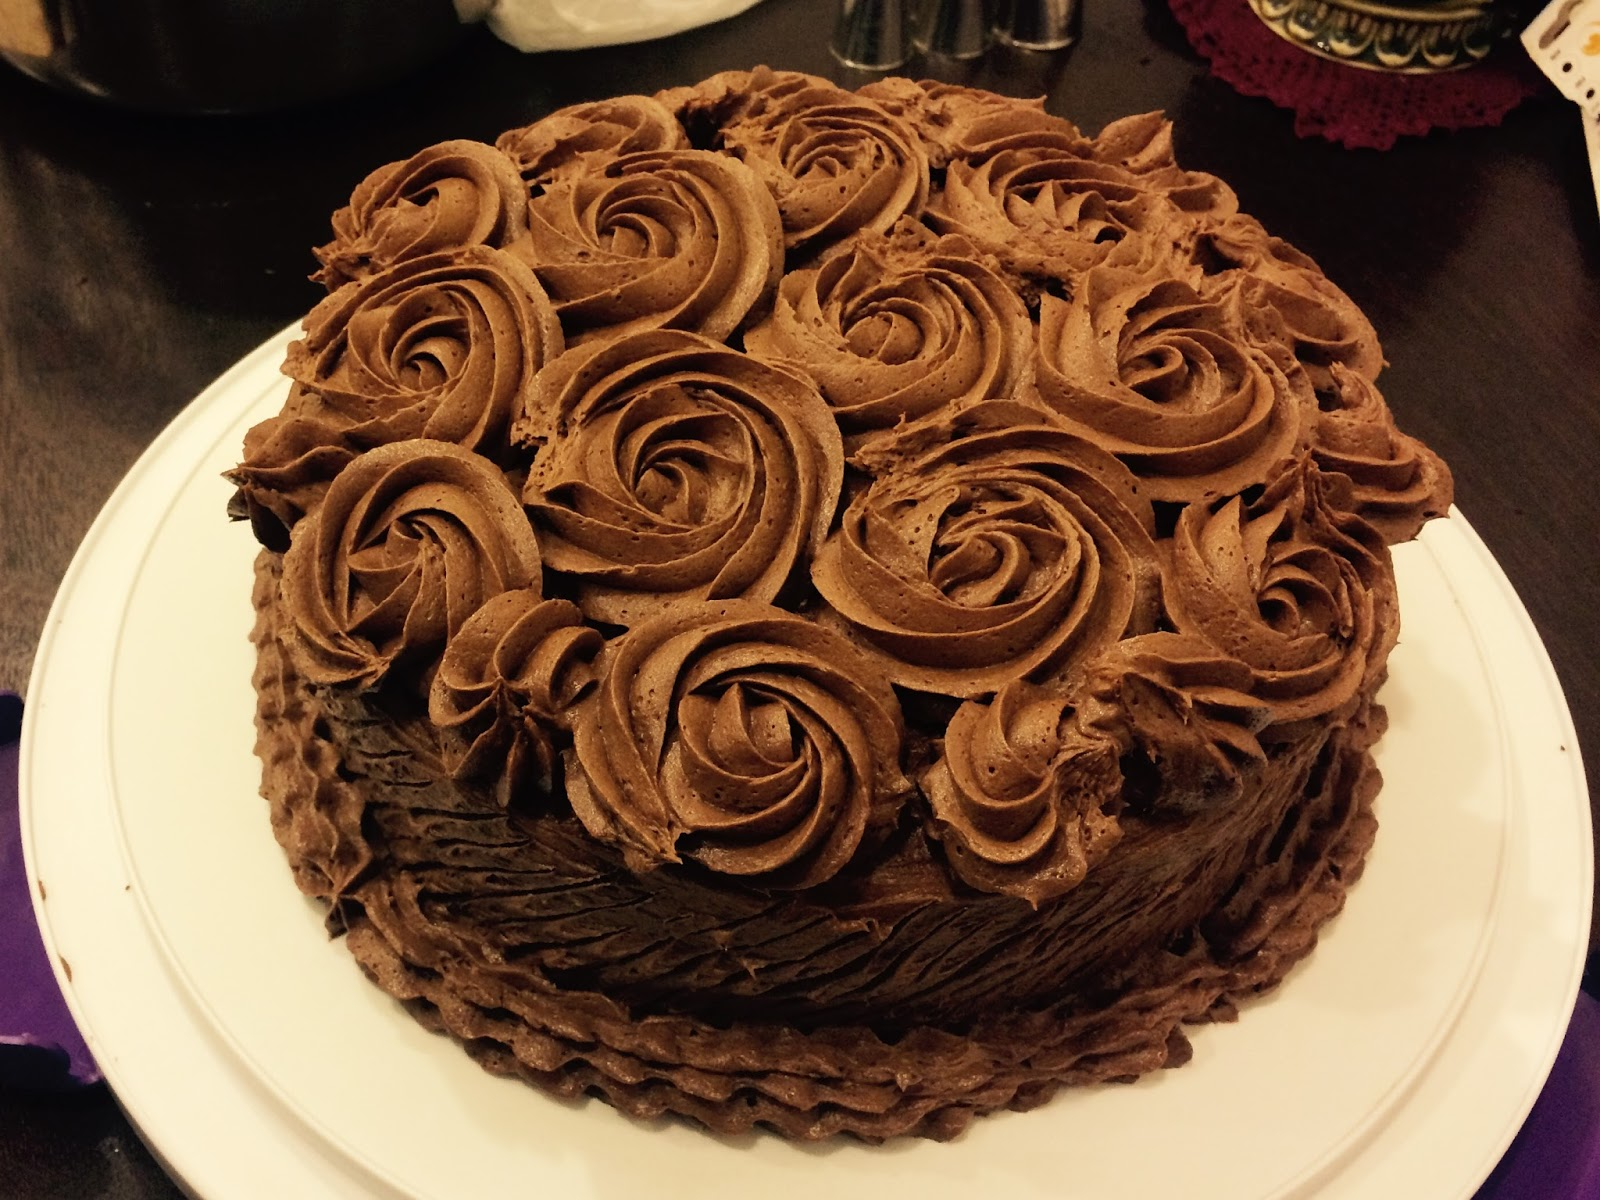 The Best Chocolate Cake Ever According to Mimi